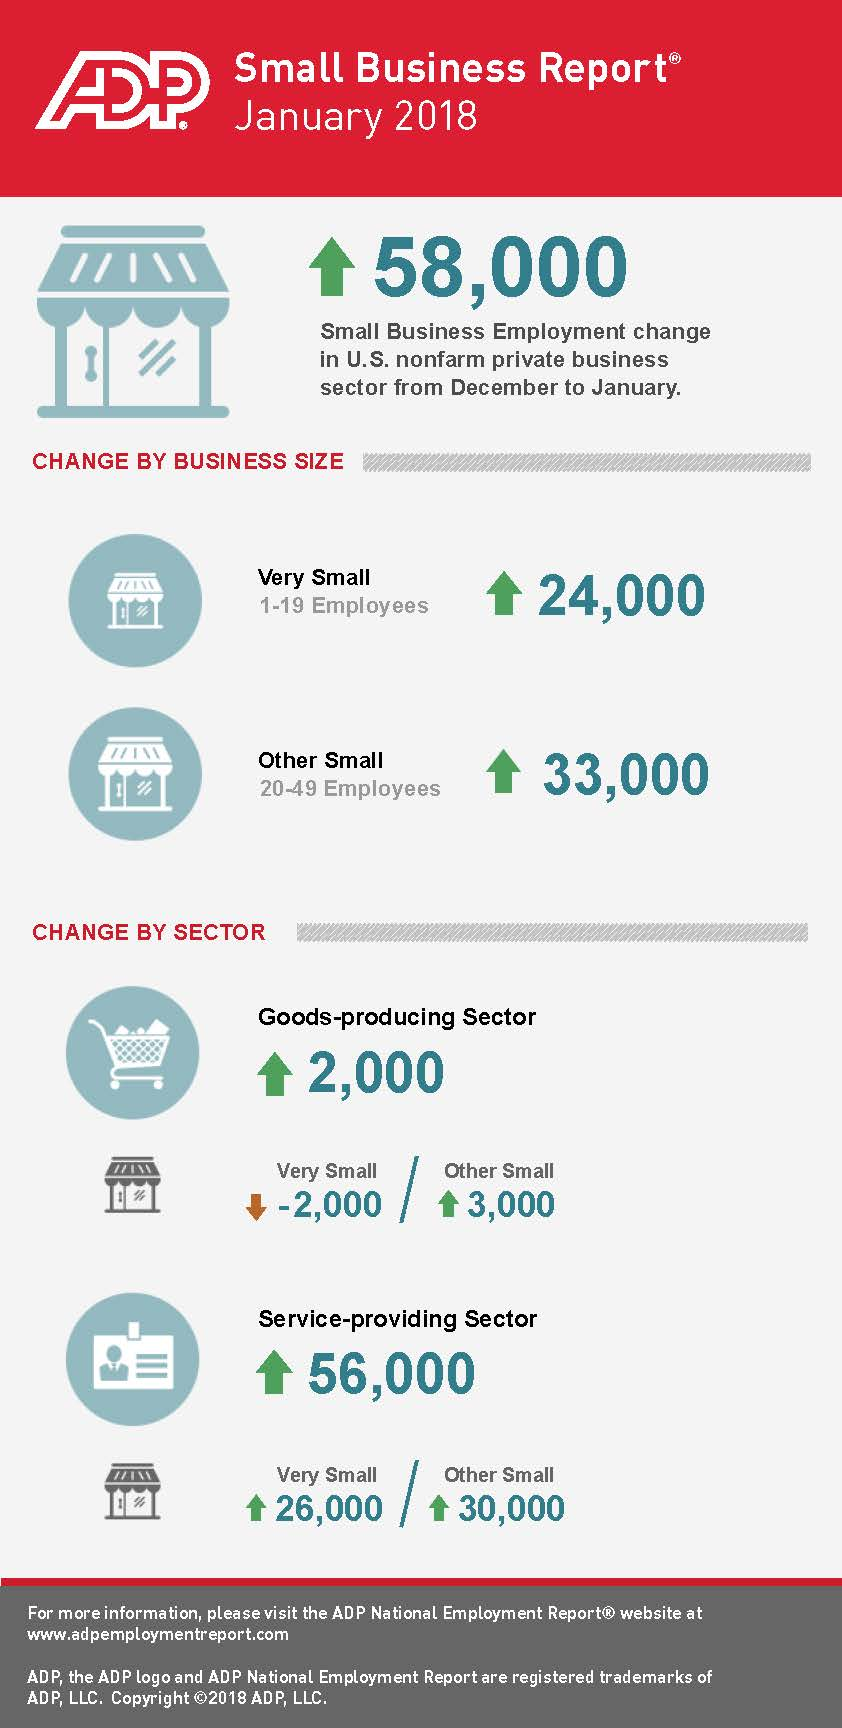 January 2018 ADP Small Business Report Shows that Small Business Added 58,000 New Jobs